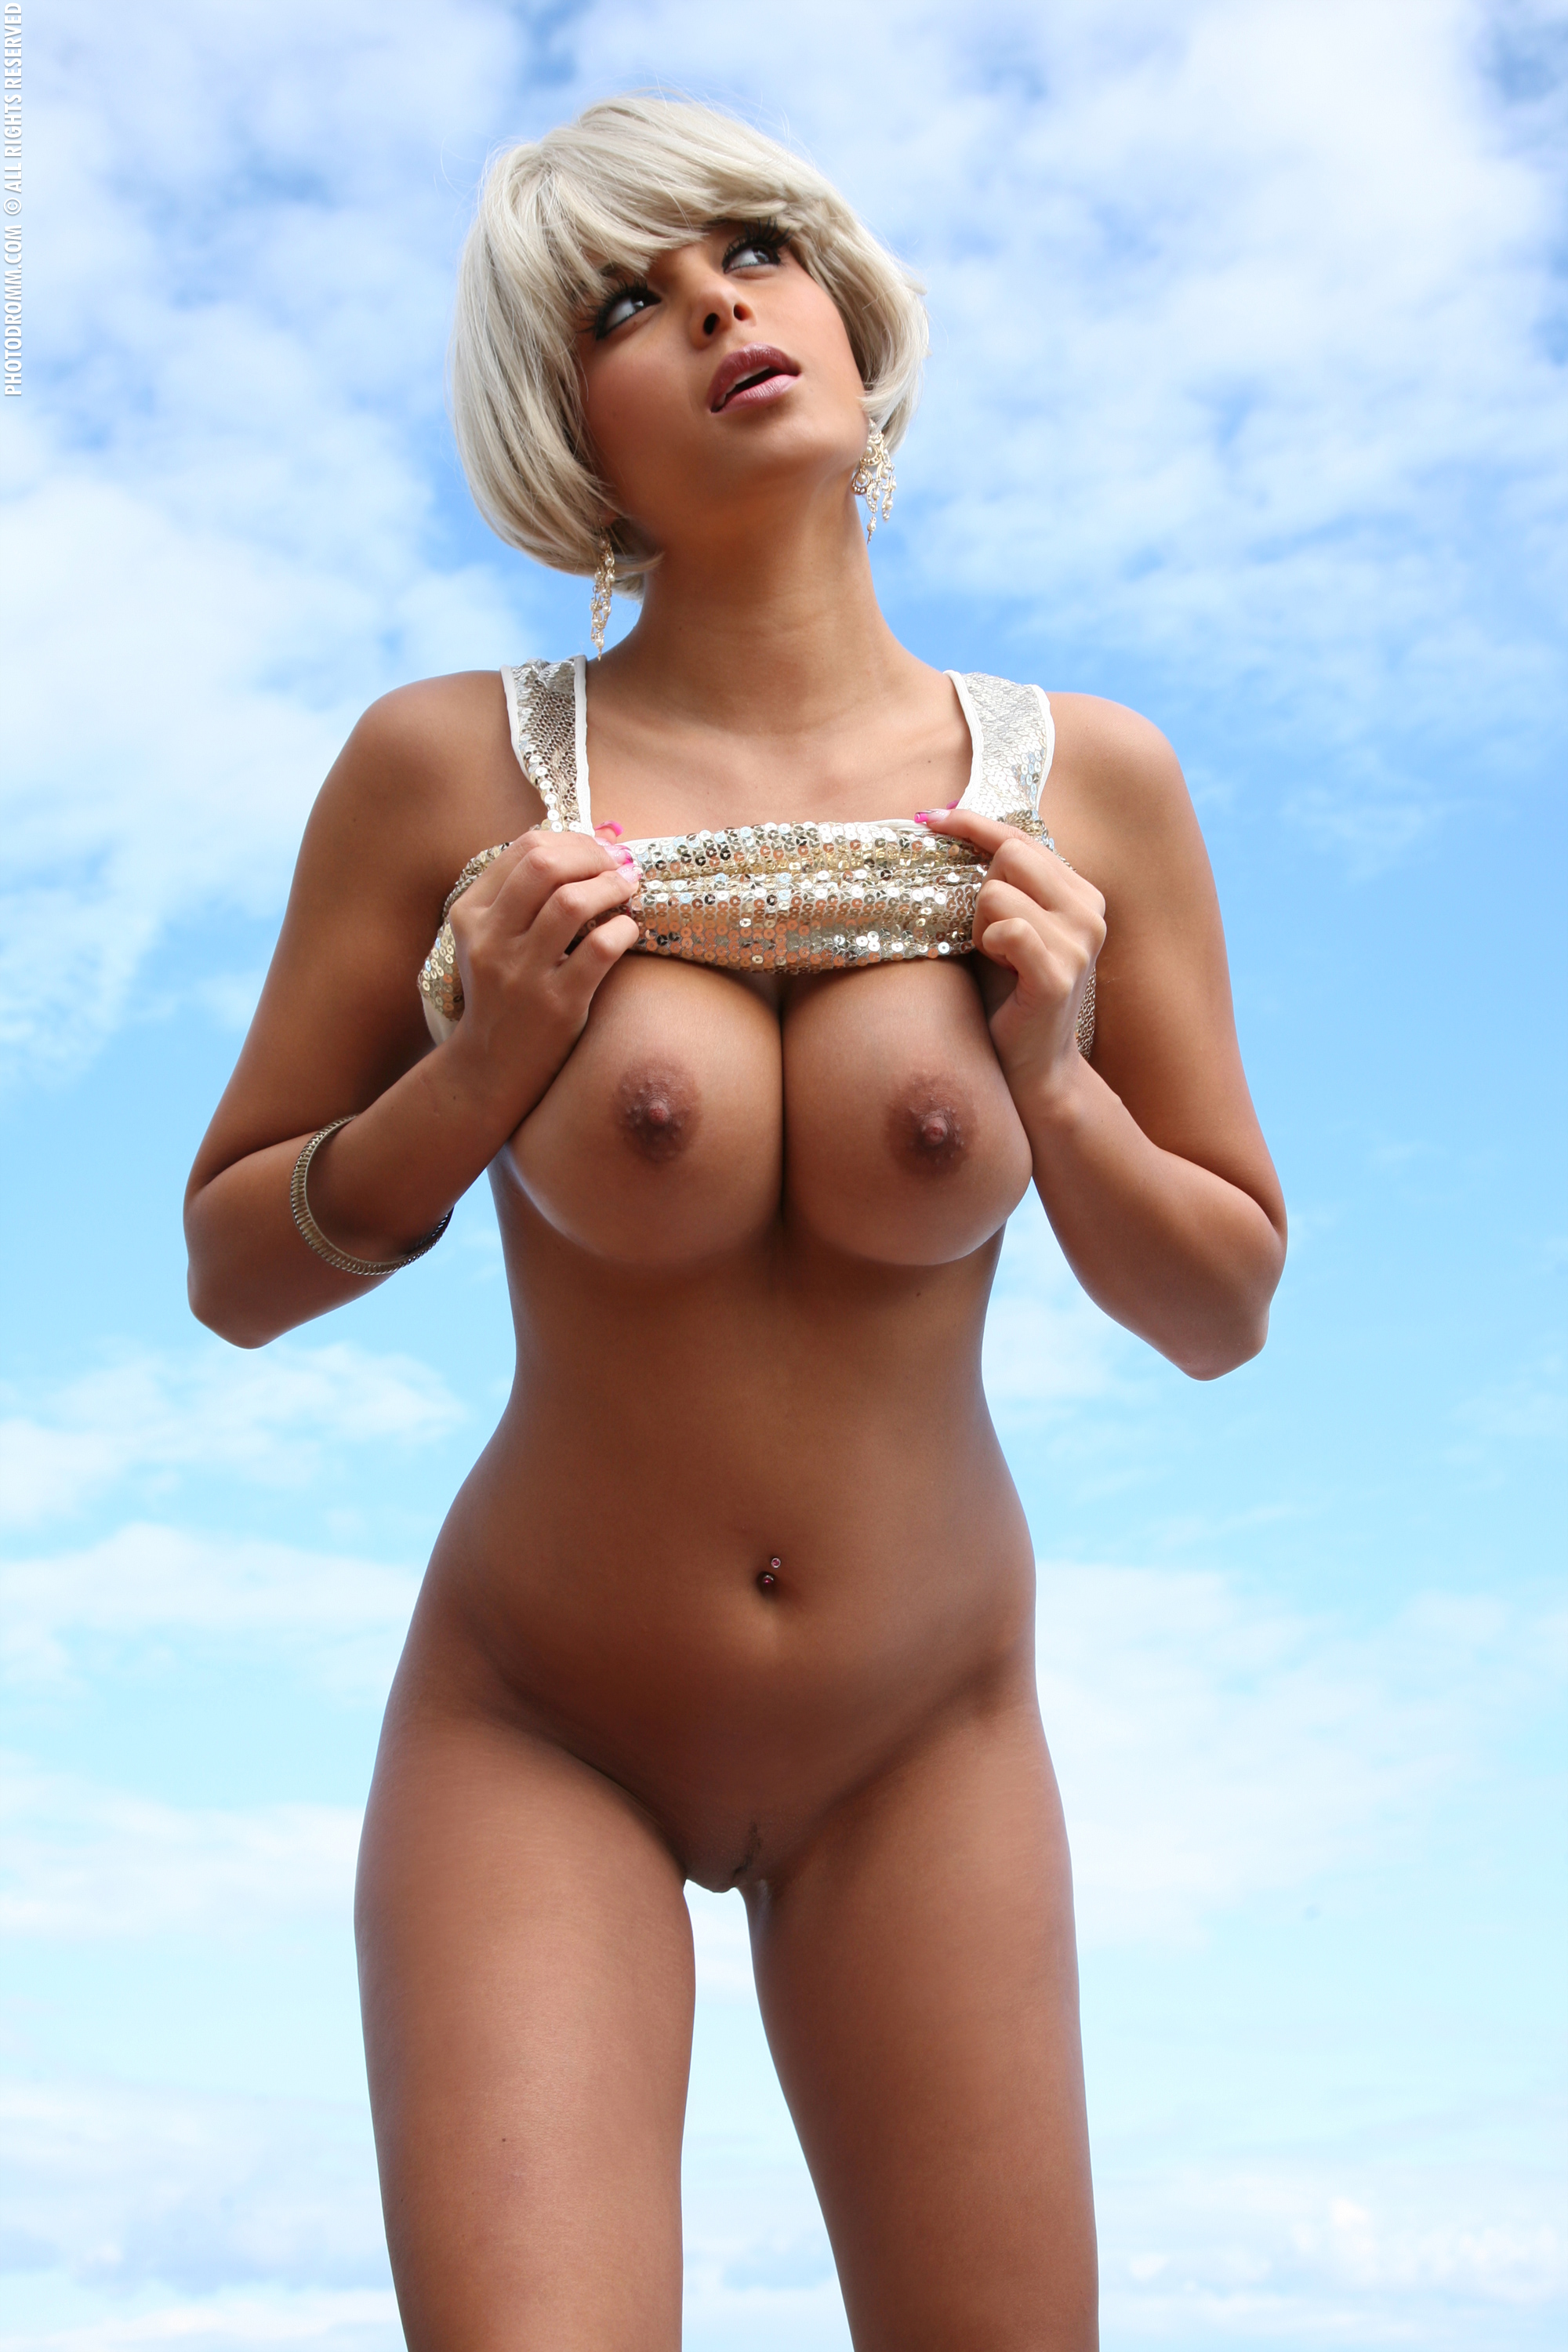 huge-boobs-tits-naked-mix-vol5-46